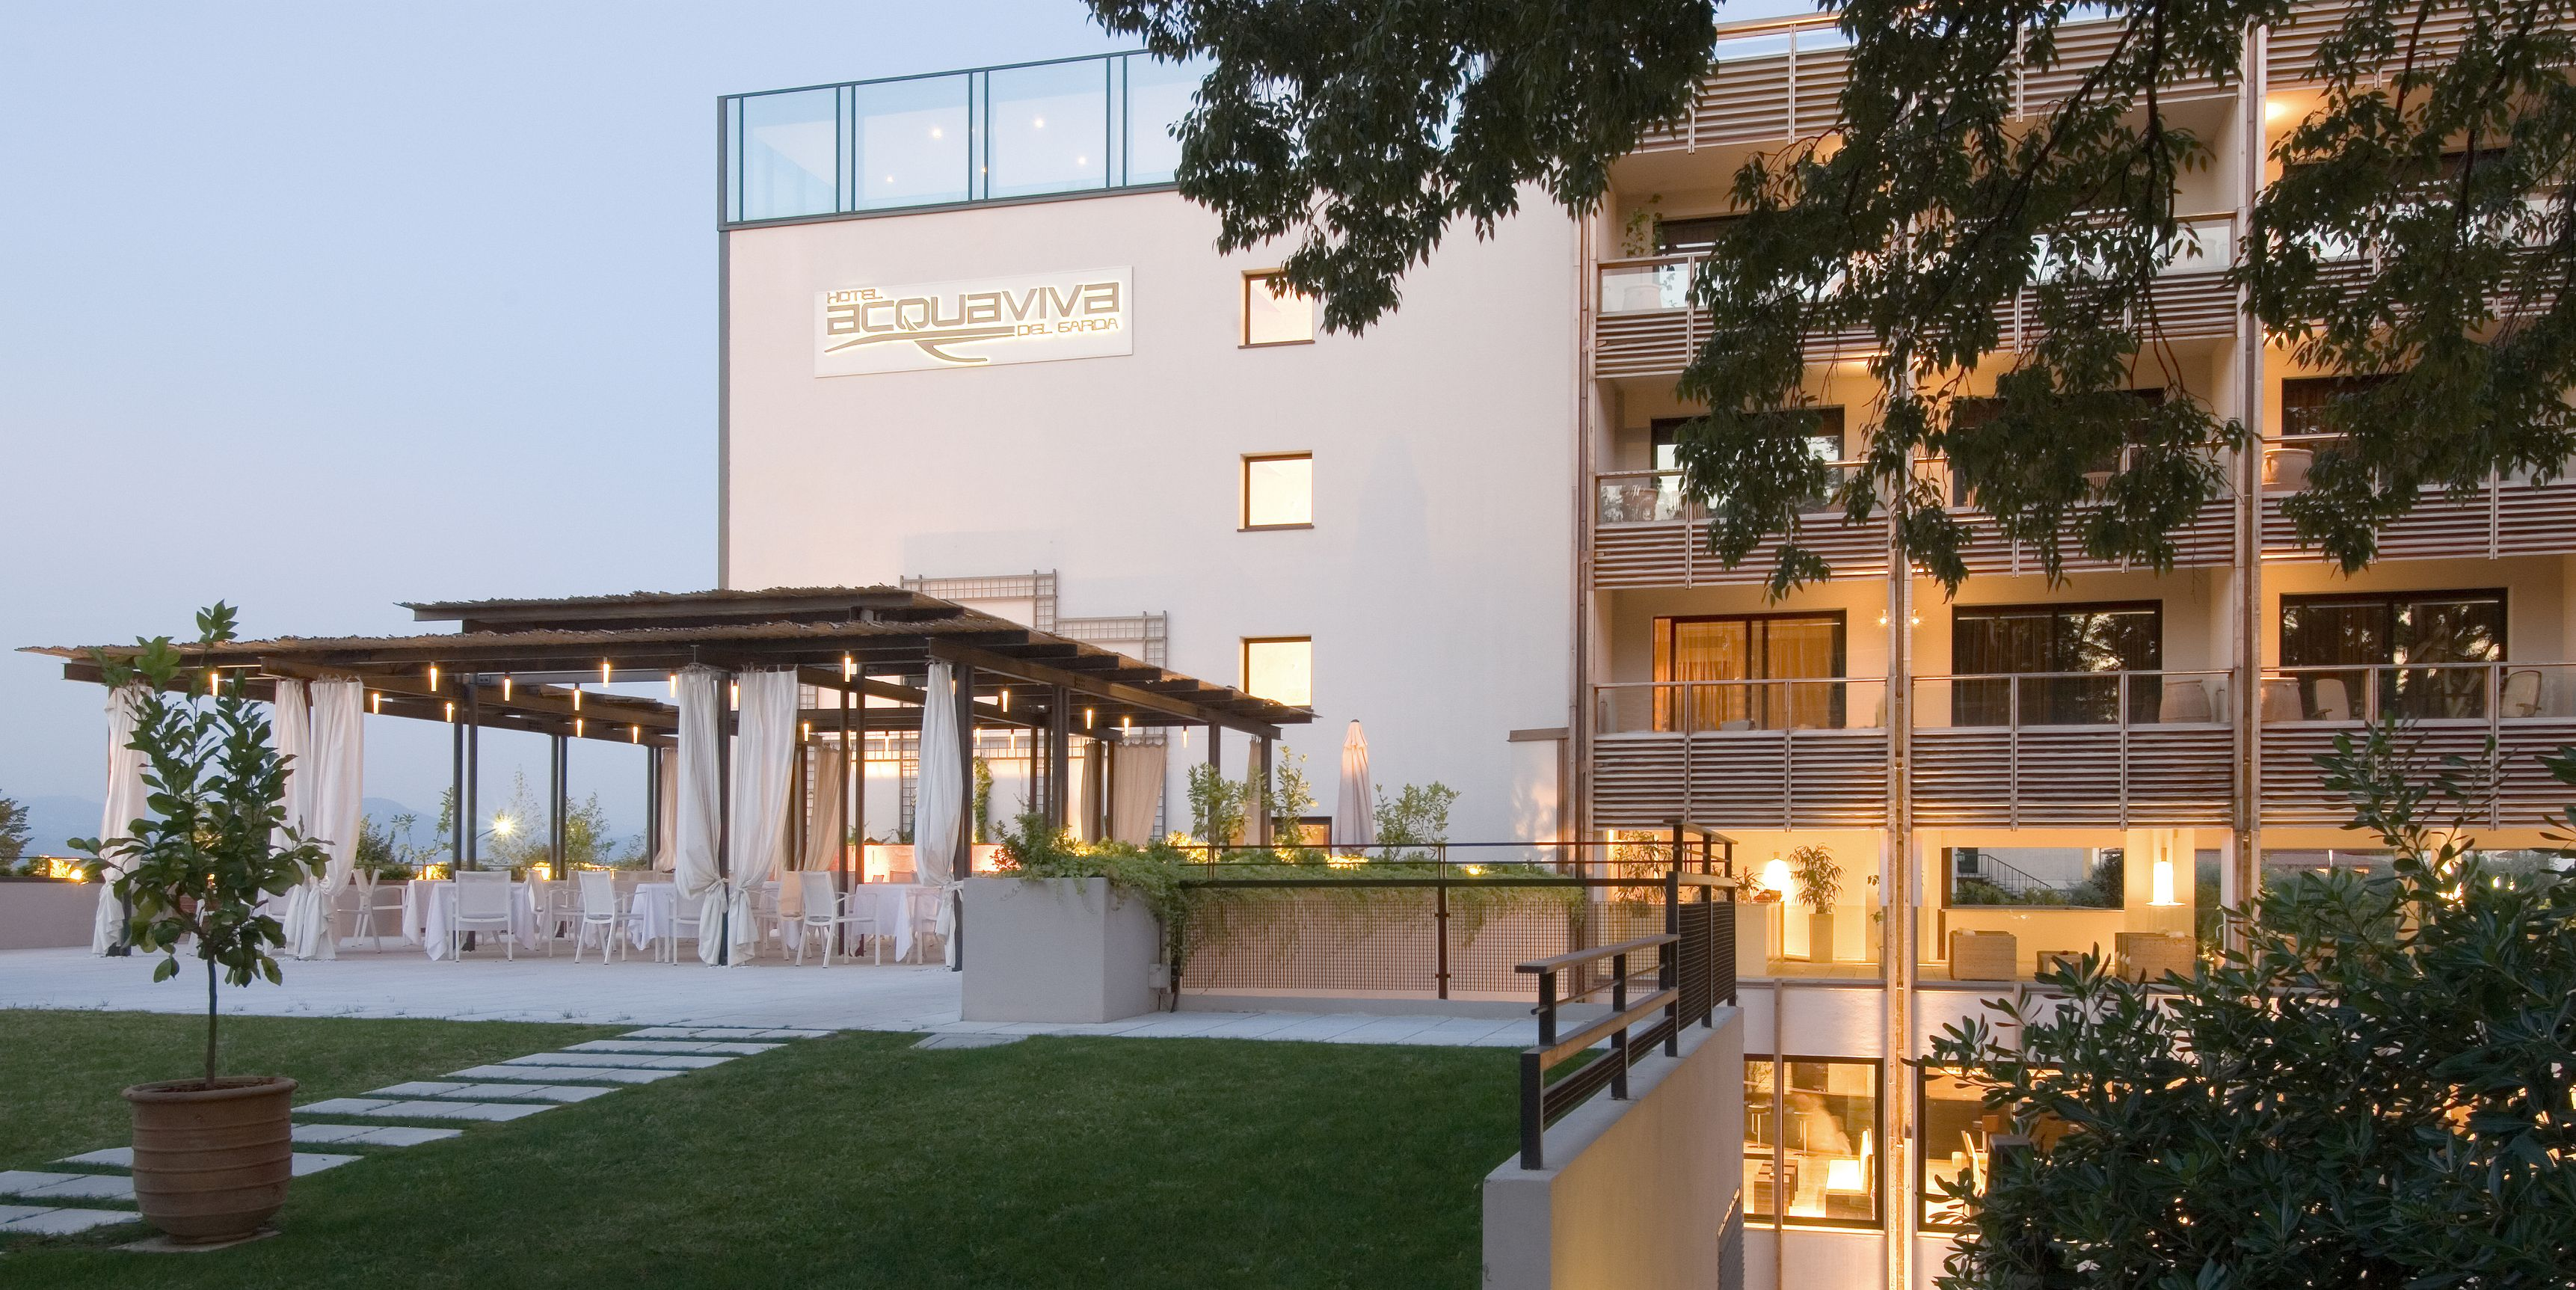 last minute hotel Desenzano. Your Garda Lake vacations at the Acquaviva Hotel. http://www.hotelacquaviva.it/pacchetti-offerte-benessere-lago-di-garda.asp/lang_en/packages-offers.html